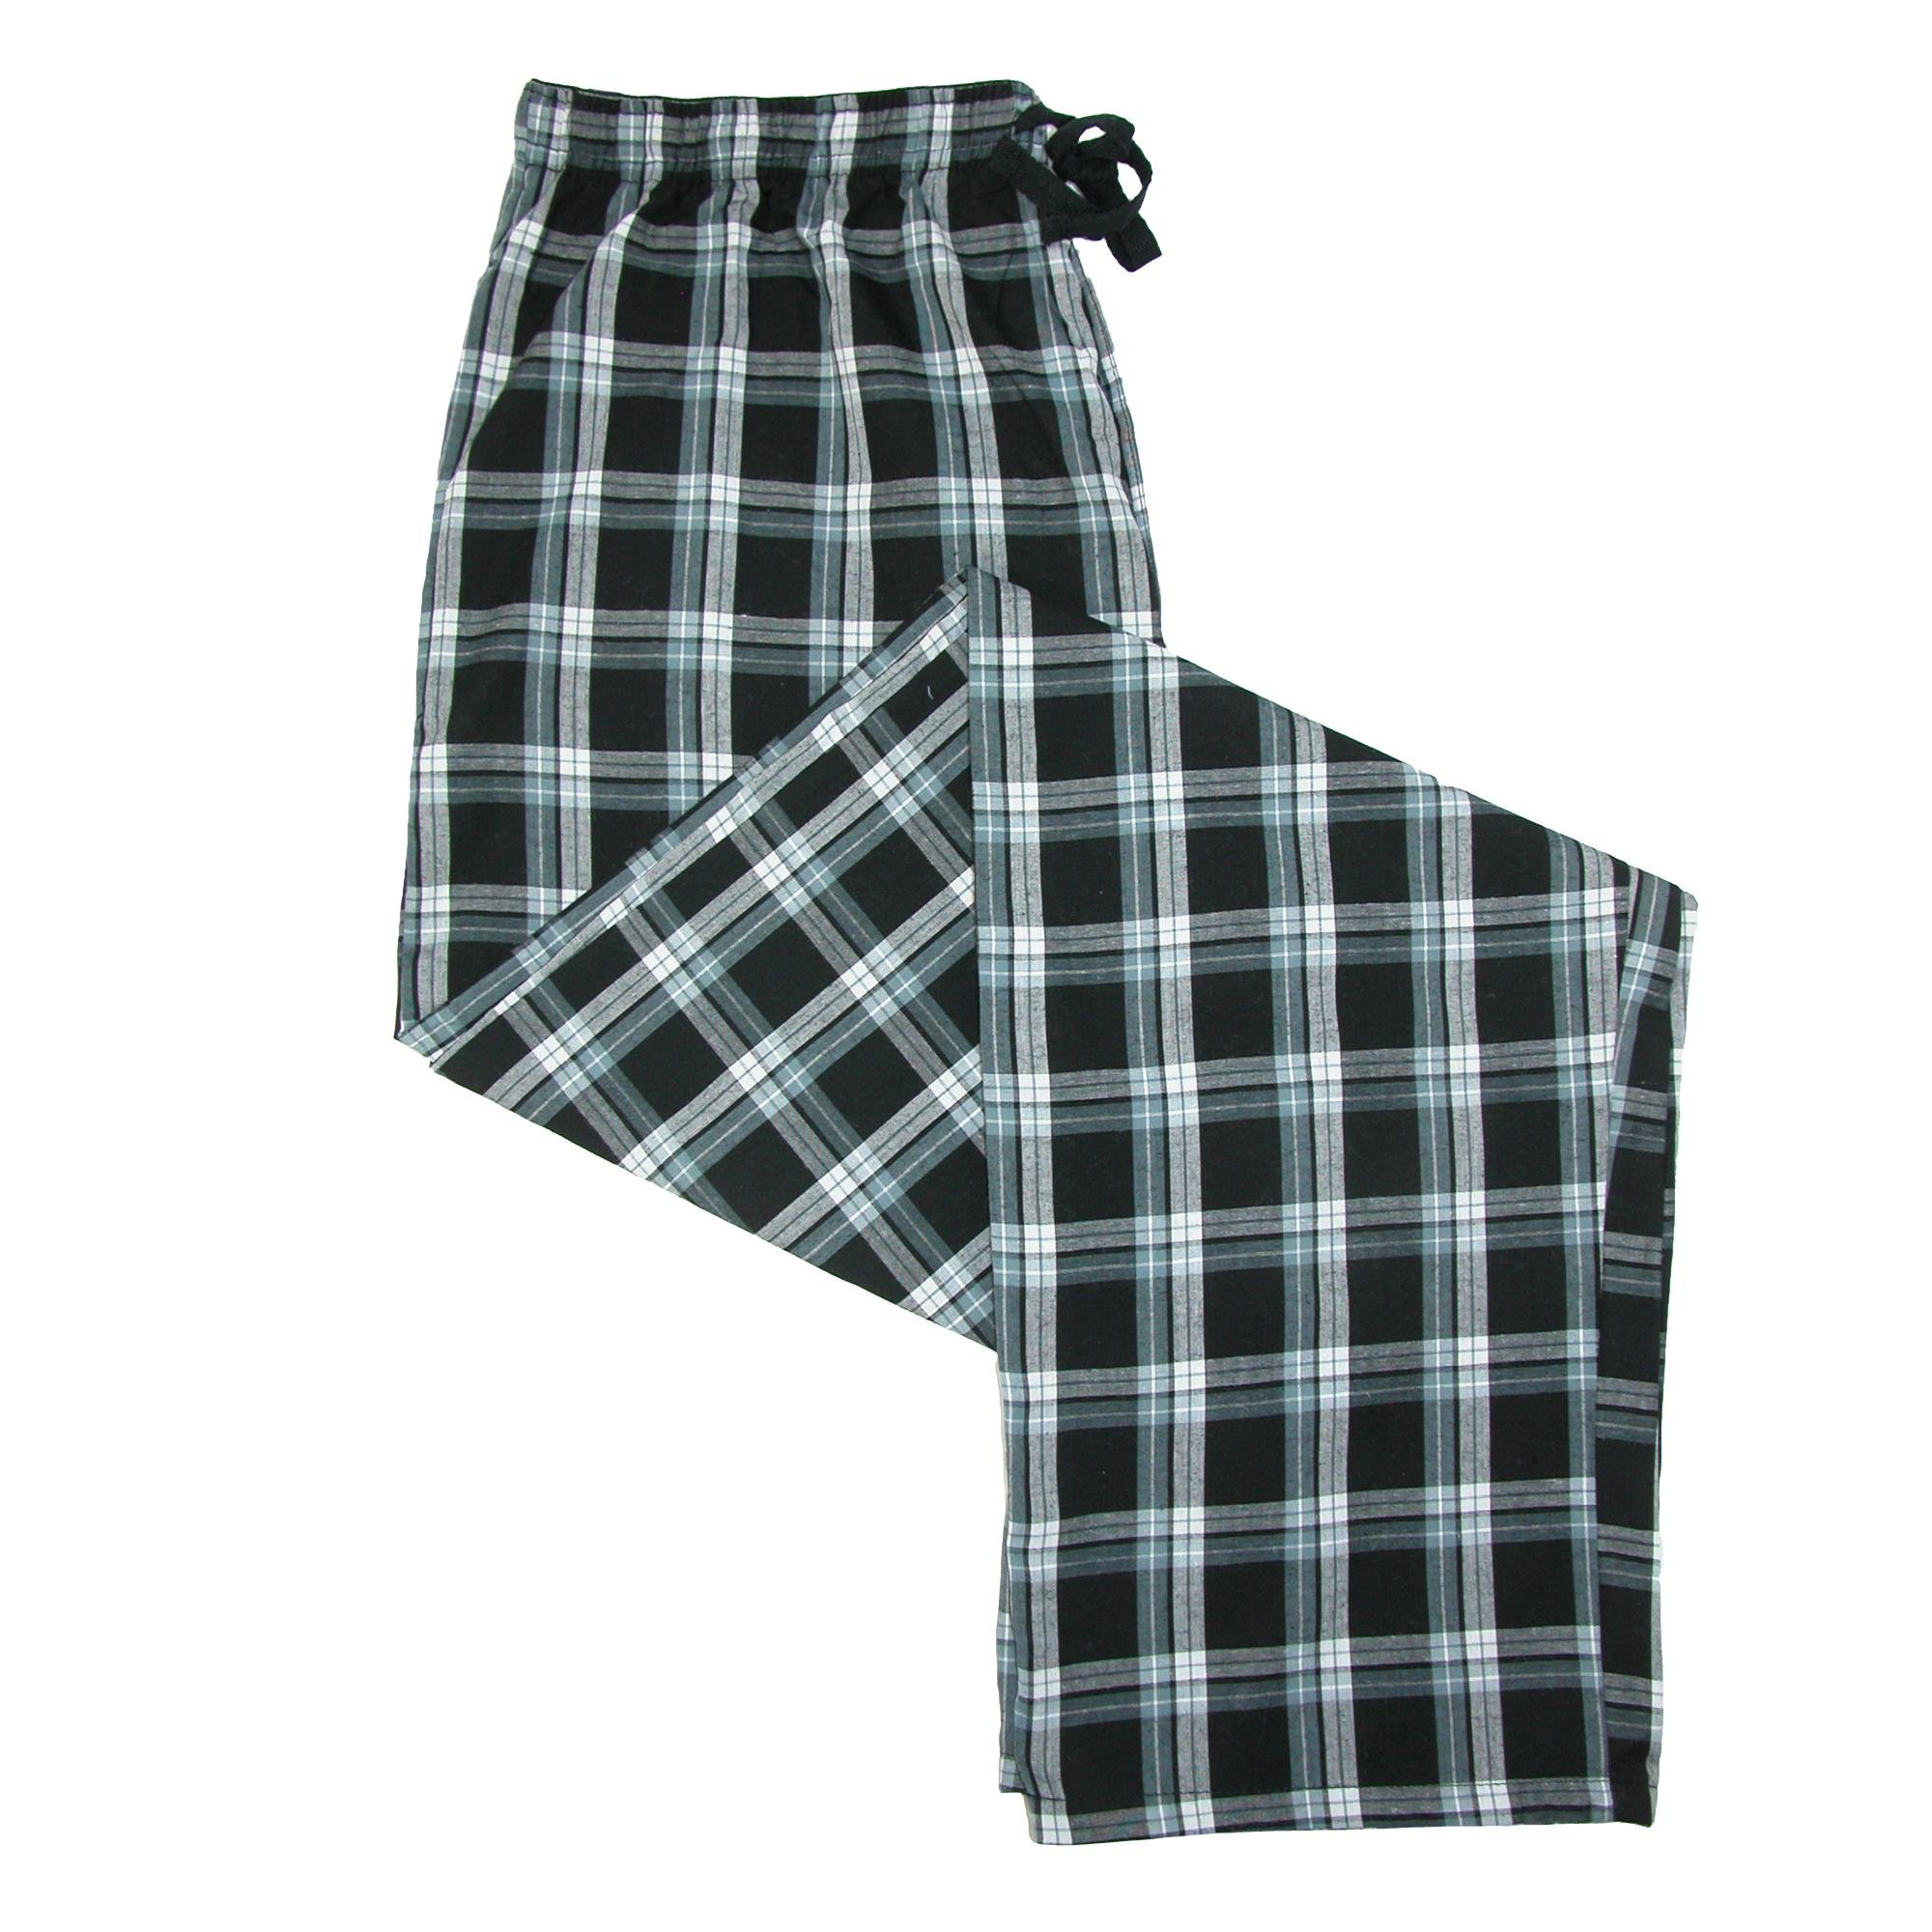 Hanes Men's Woven Plaid Drawstring Sleep Pajama Pants, XL, Black